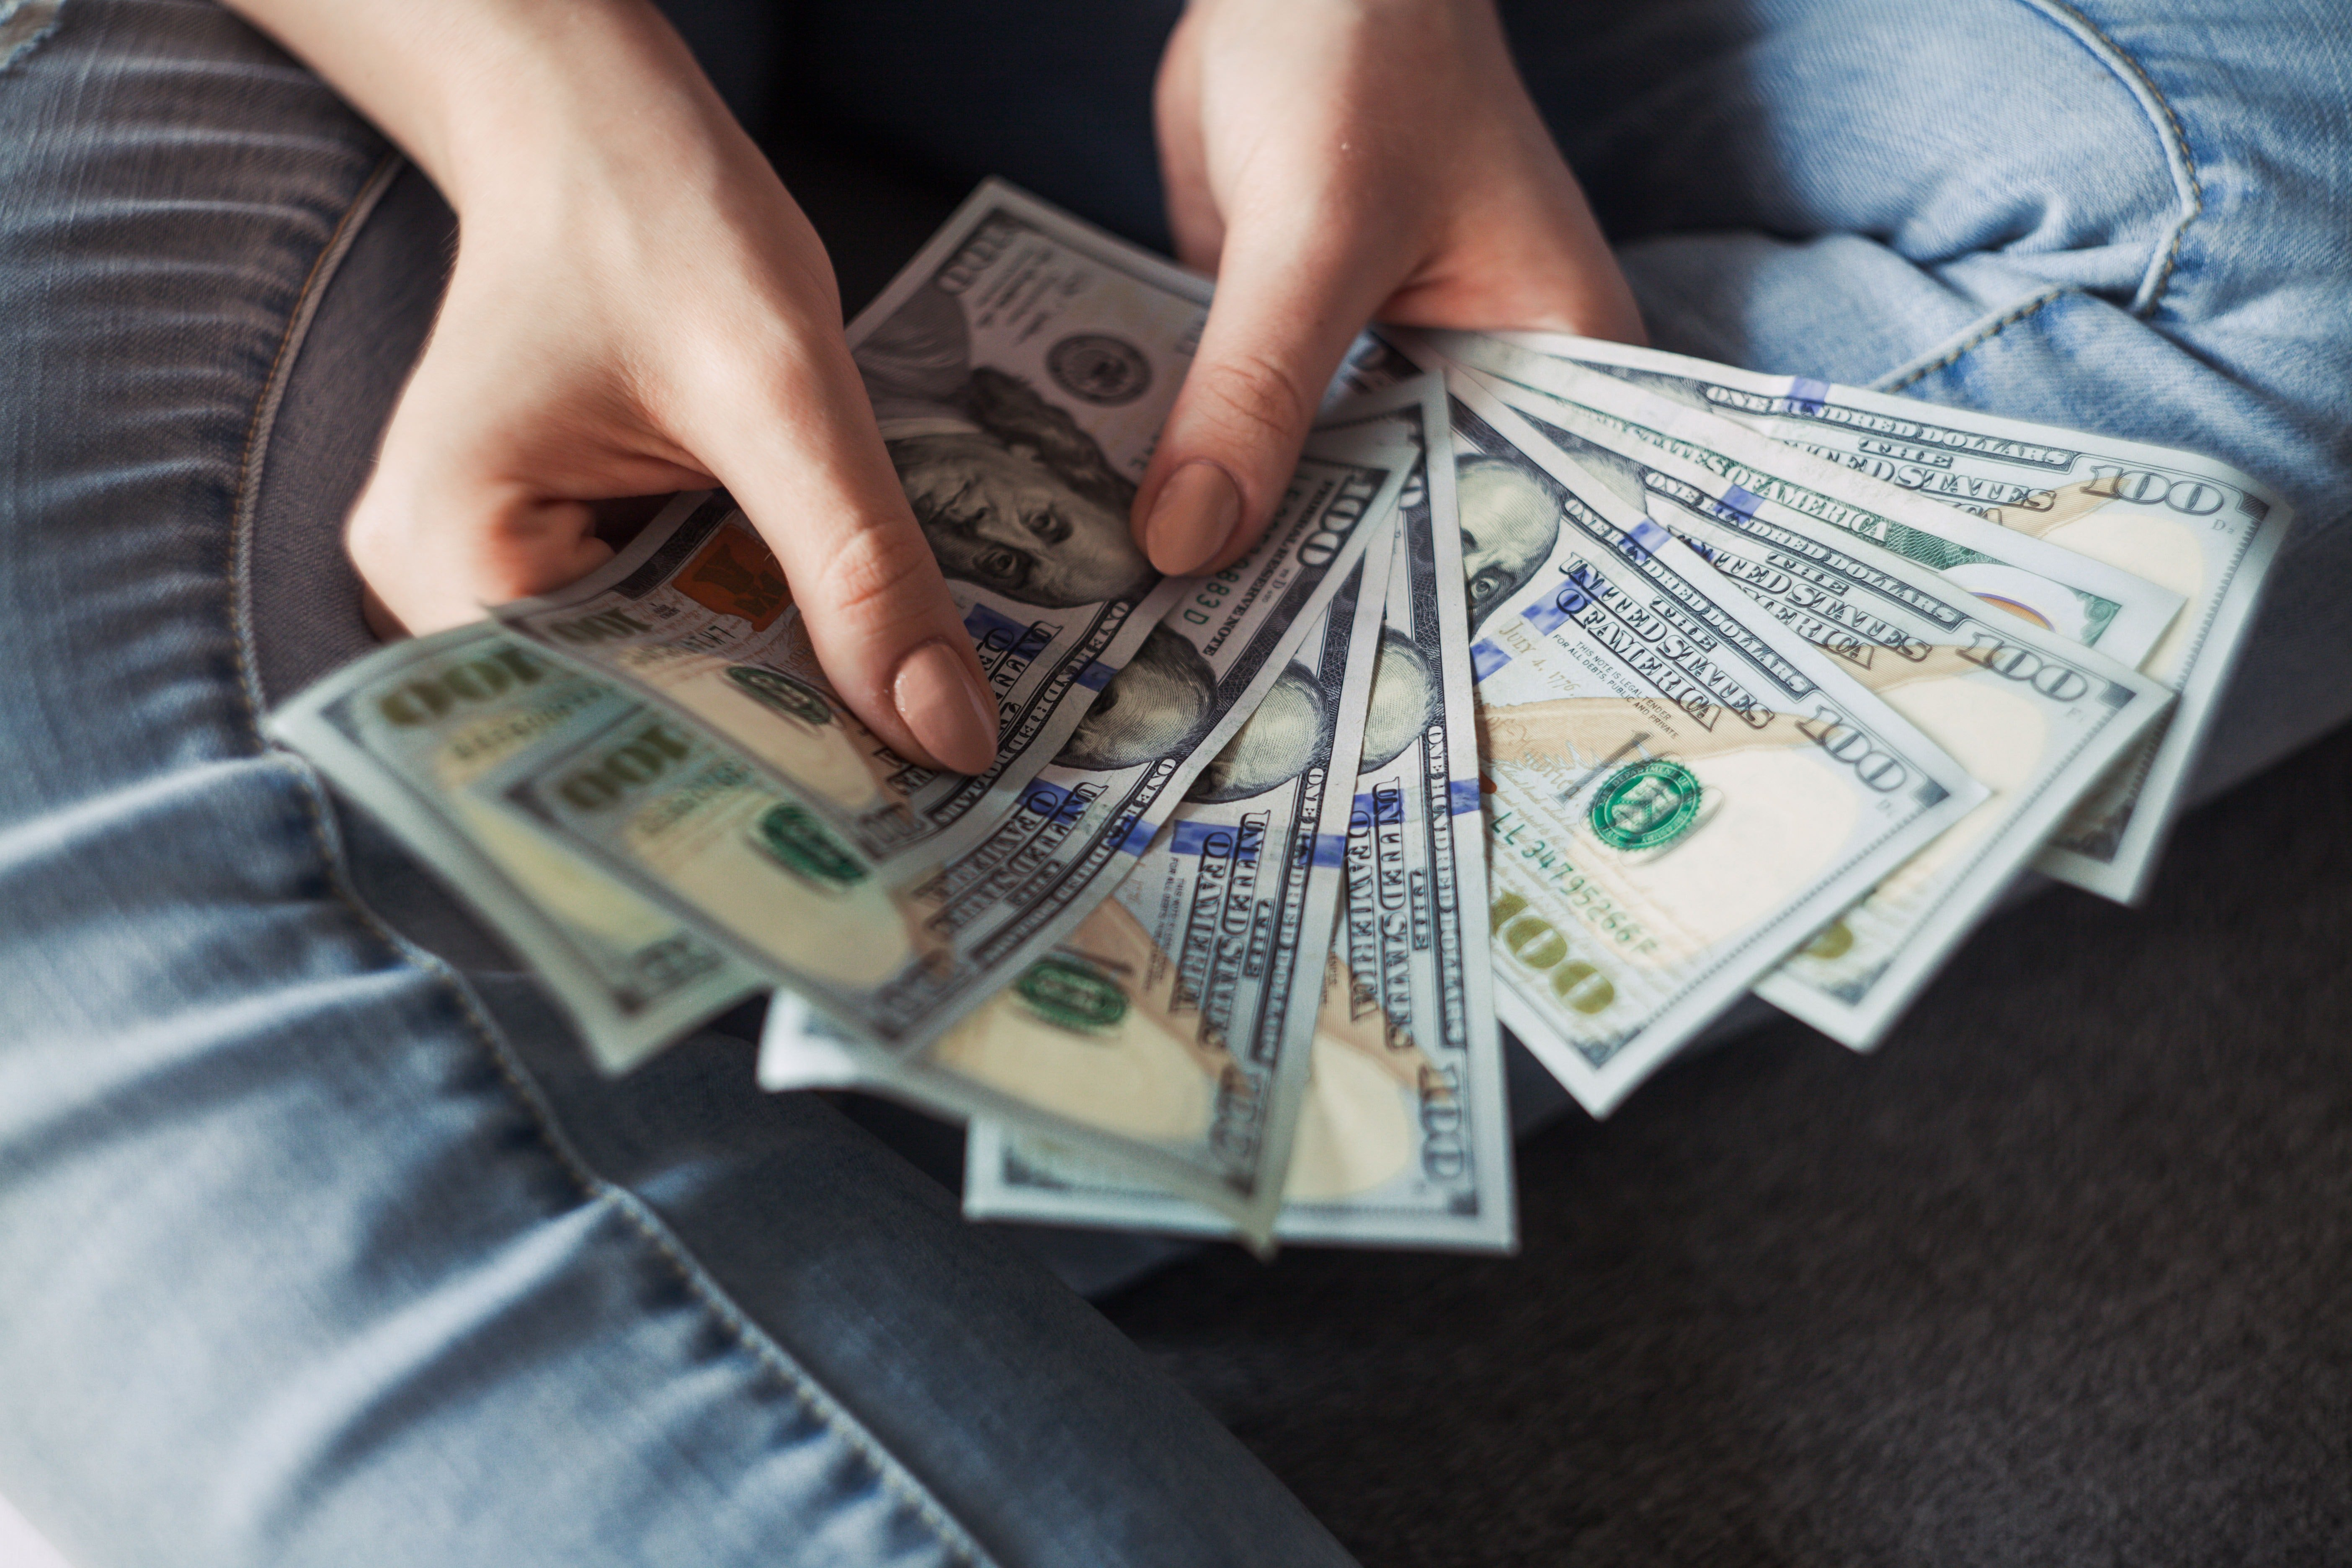 Pictured - A person holding 100 dollar bank notes | Source: Pexels